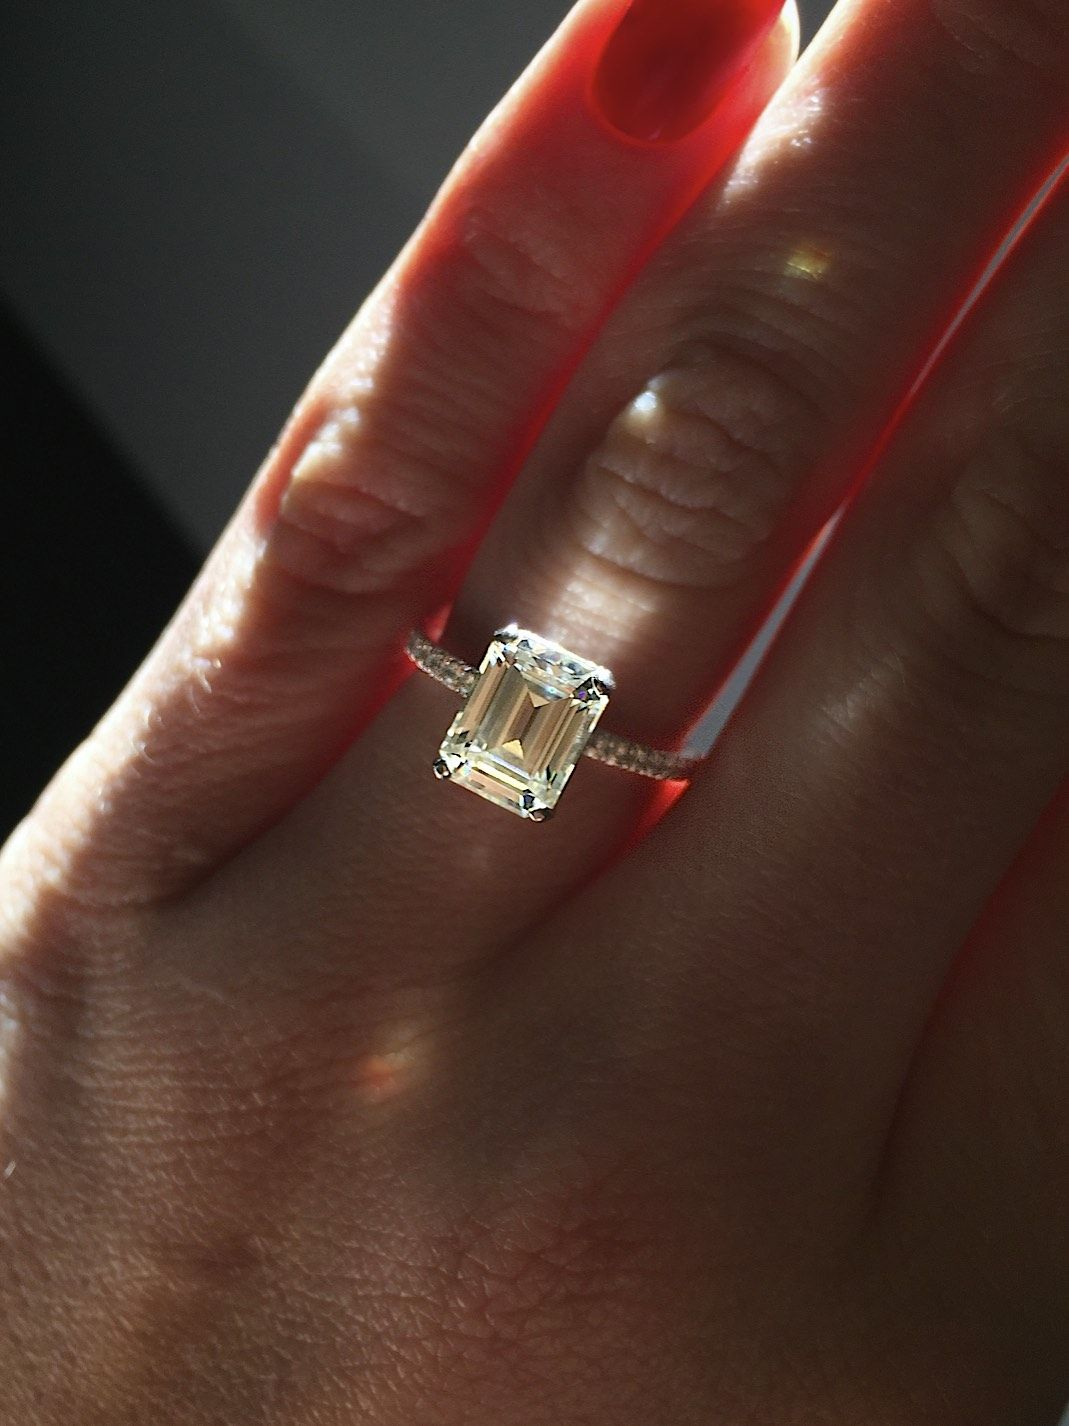 My Engagement Ring! 25 Carat Emerald Cut, Made By Rosados Box